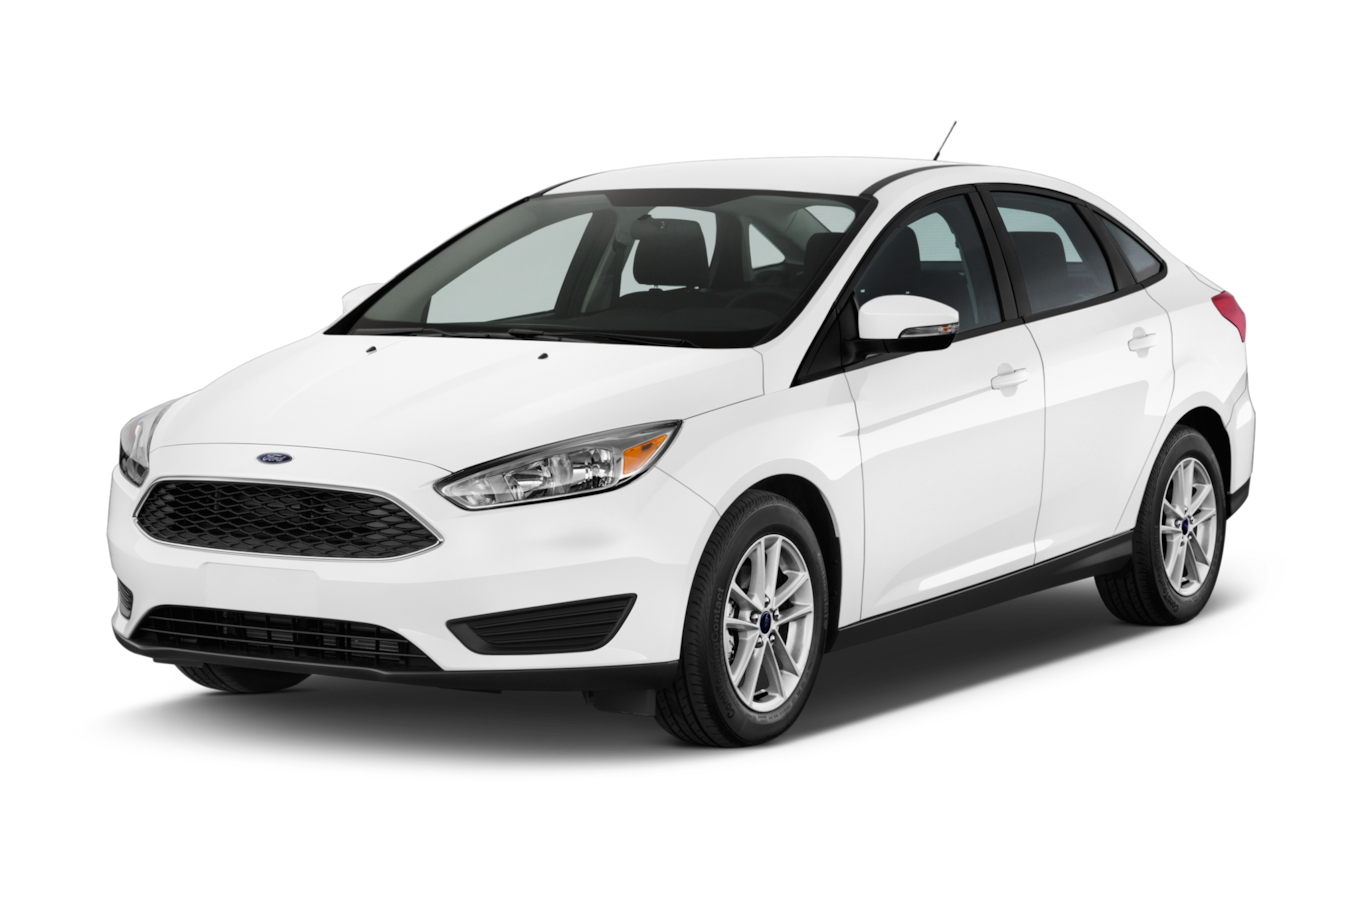 22 Gallery of 2019 Ford Focus Sedan Picture for 2019 Ford Focus Sedan